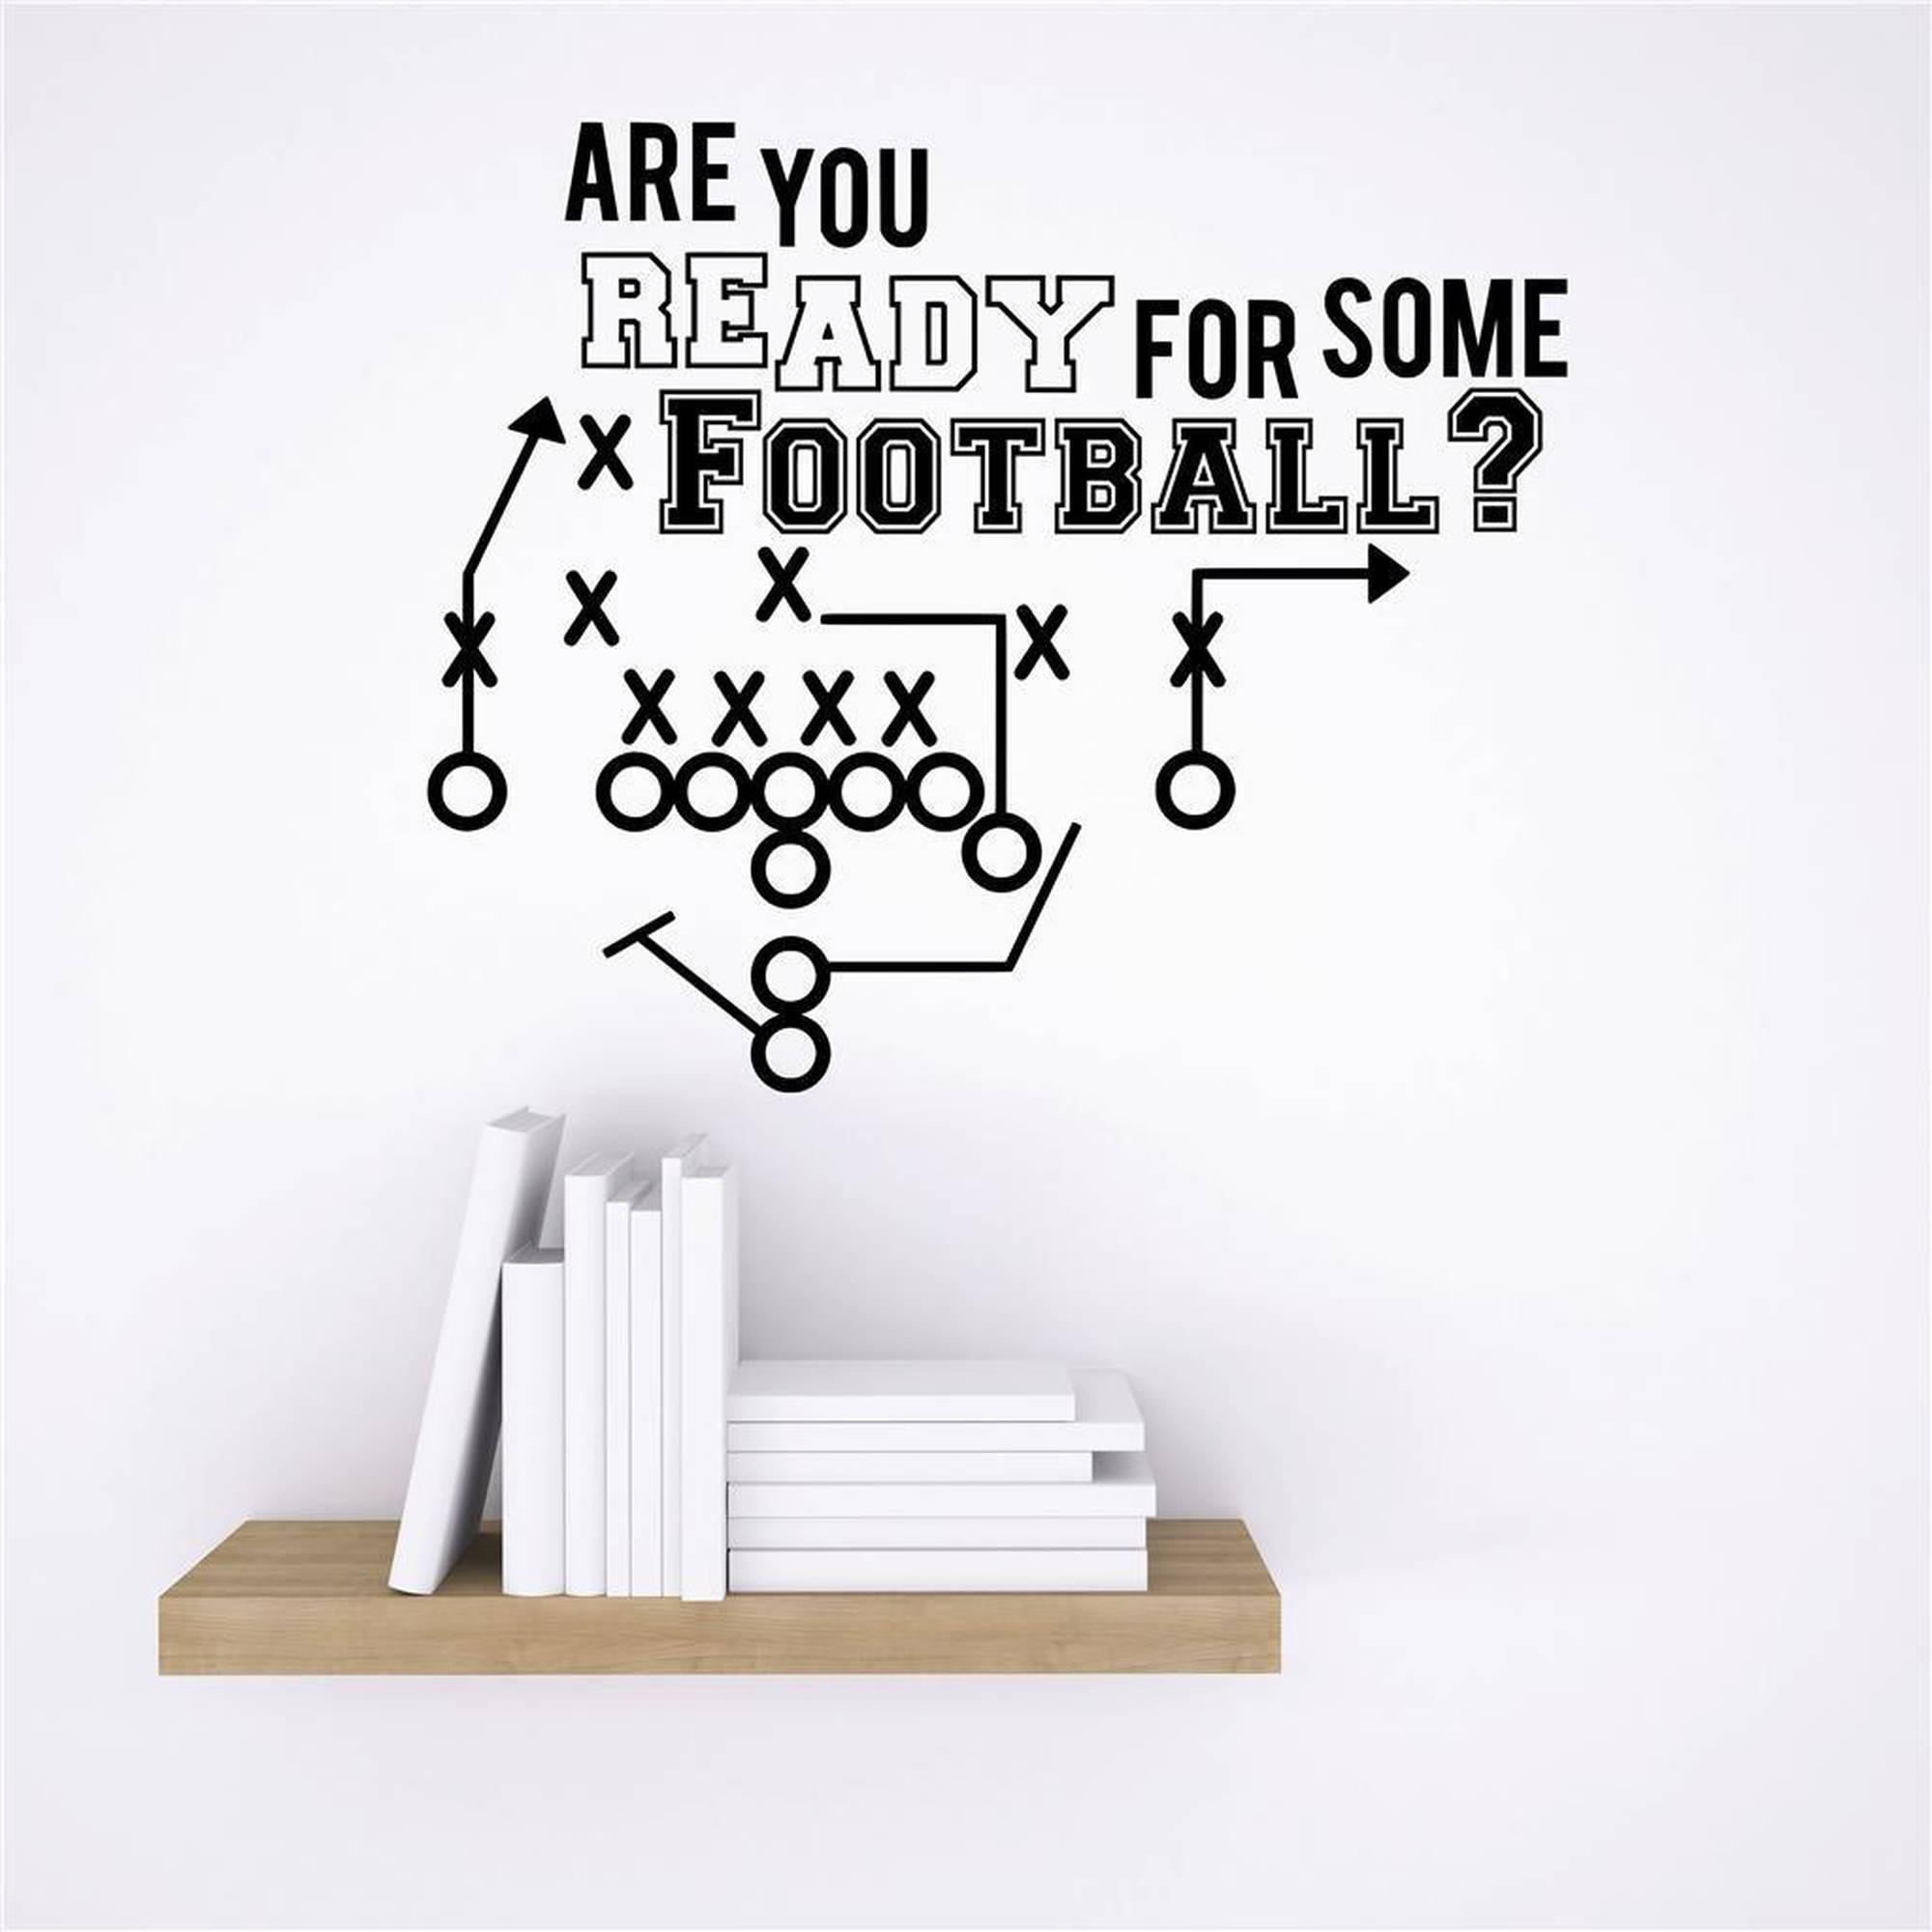 "Are You Ready For Some Football? Vinyl Wall Decal, 18"" x 20"", Black"